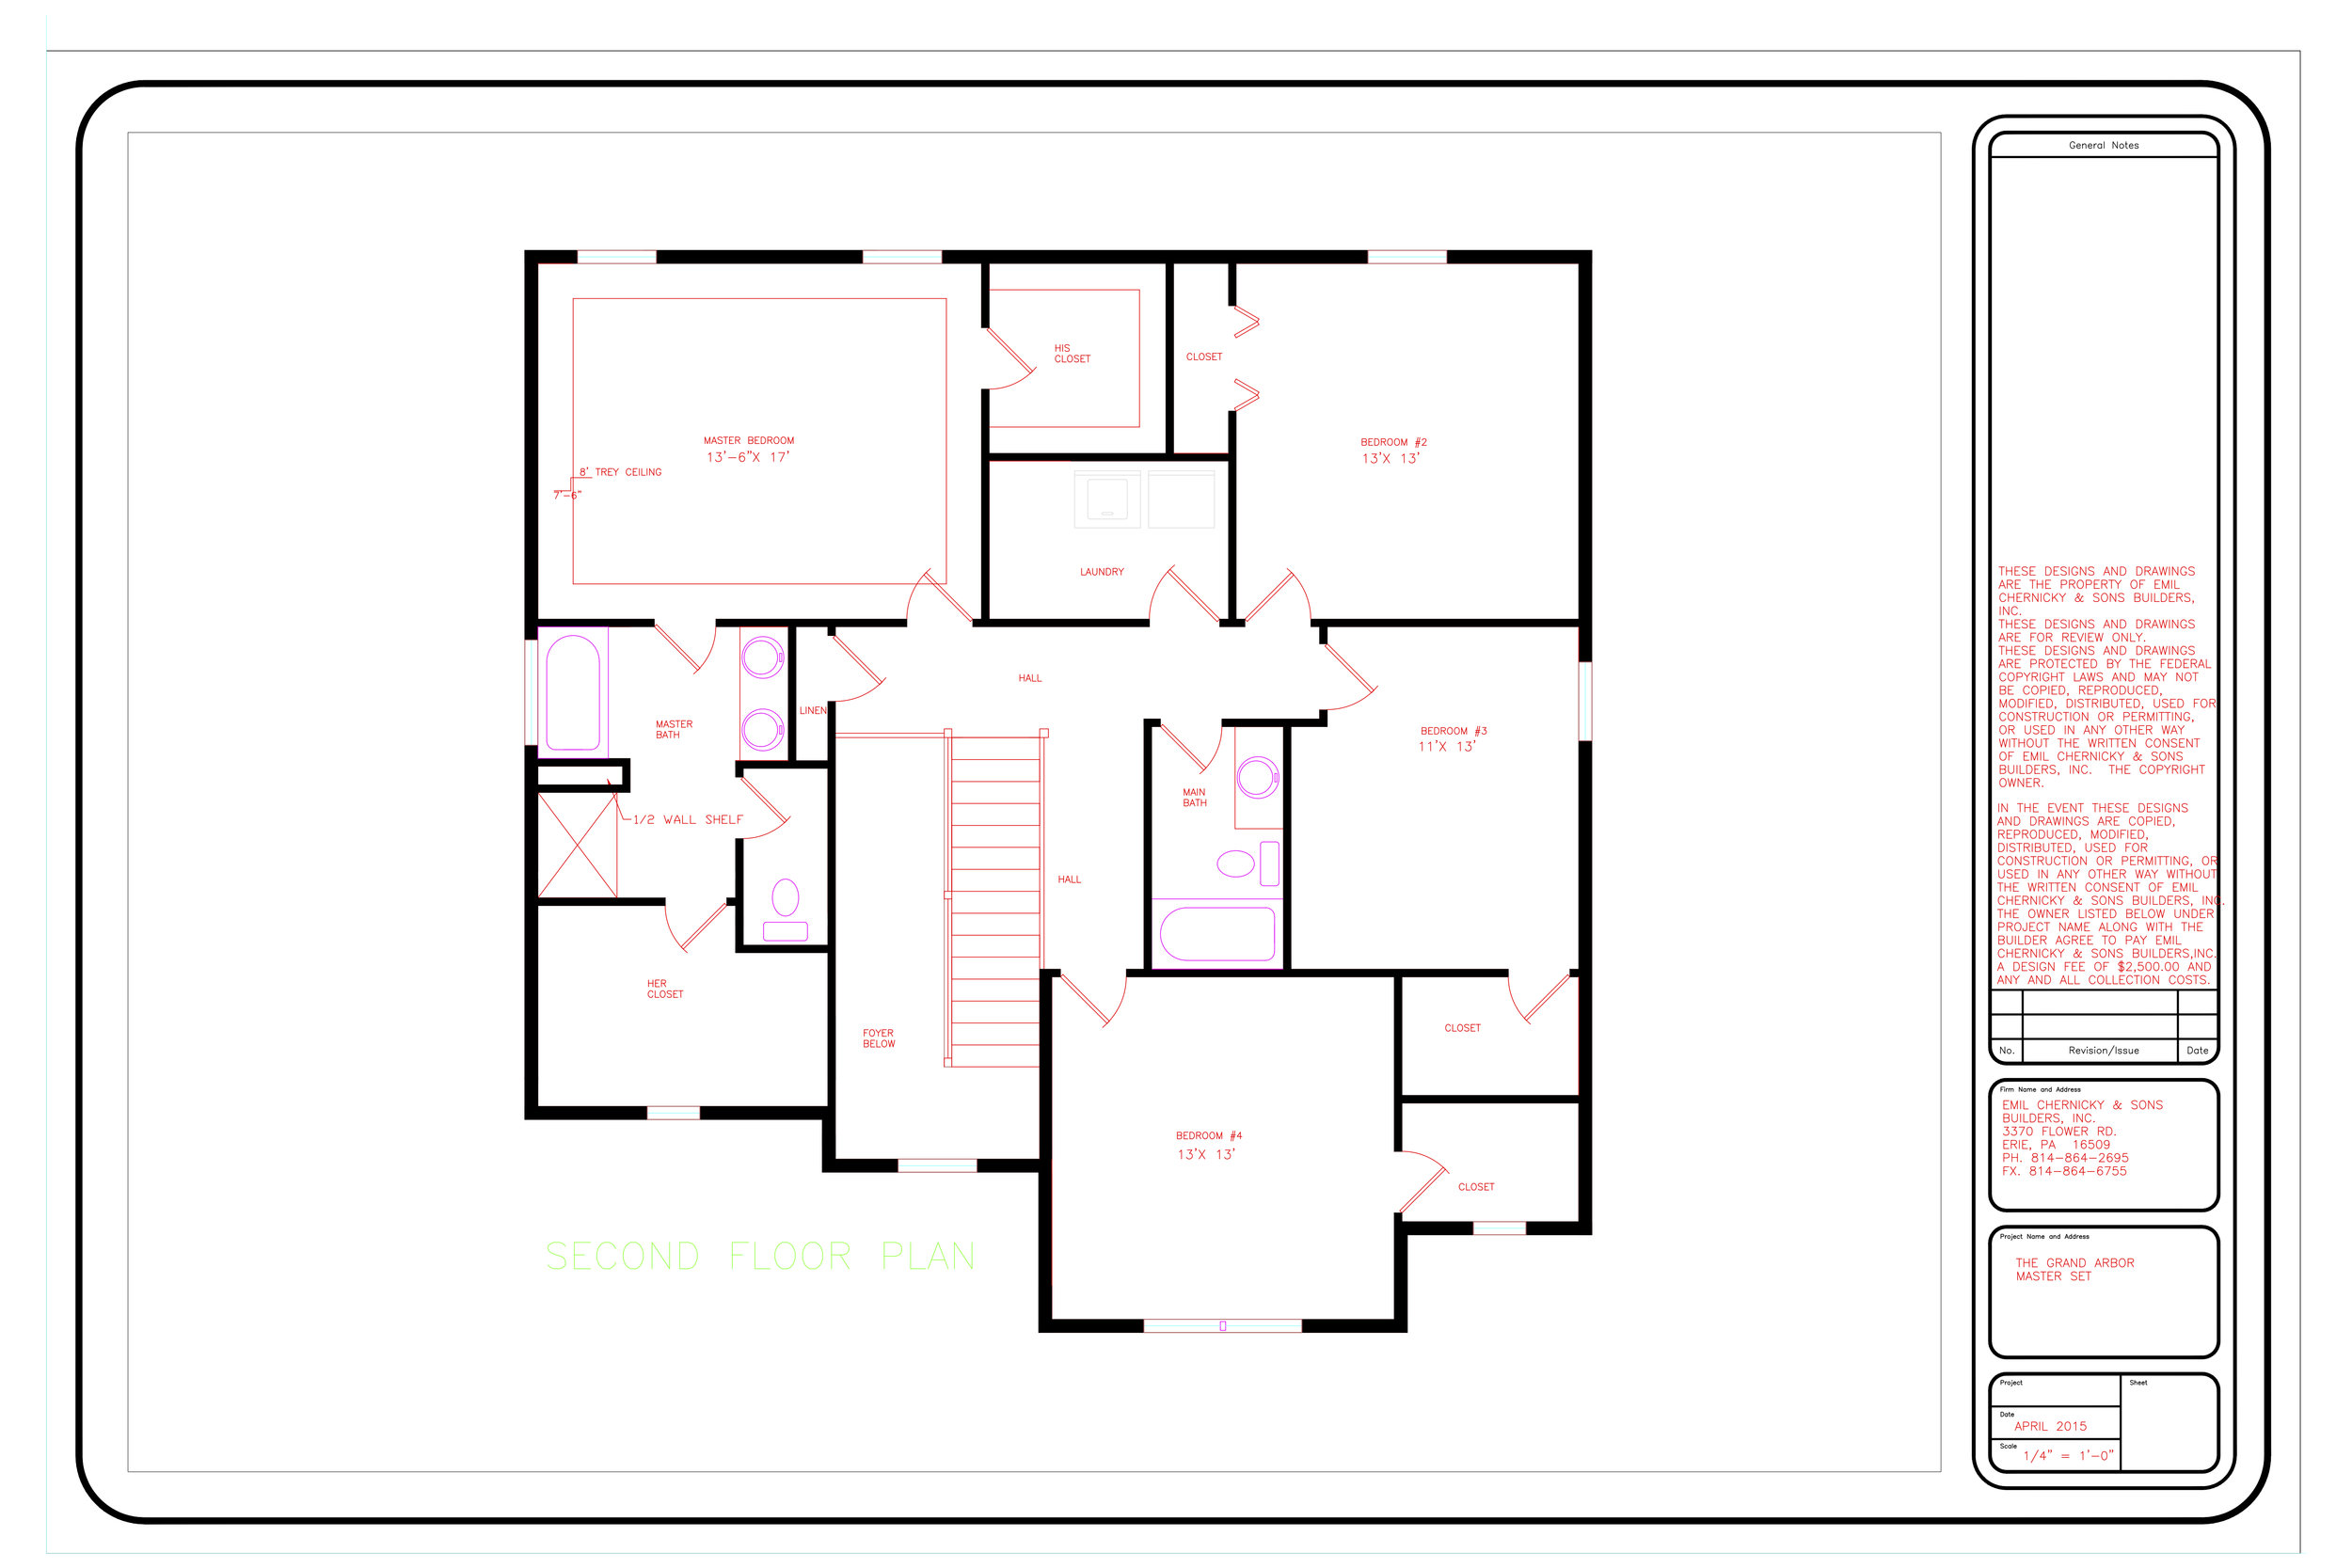 GRAND ARBOR MASTER SET  SECOND FLOOR REVIEW-Layout1.jpg